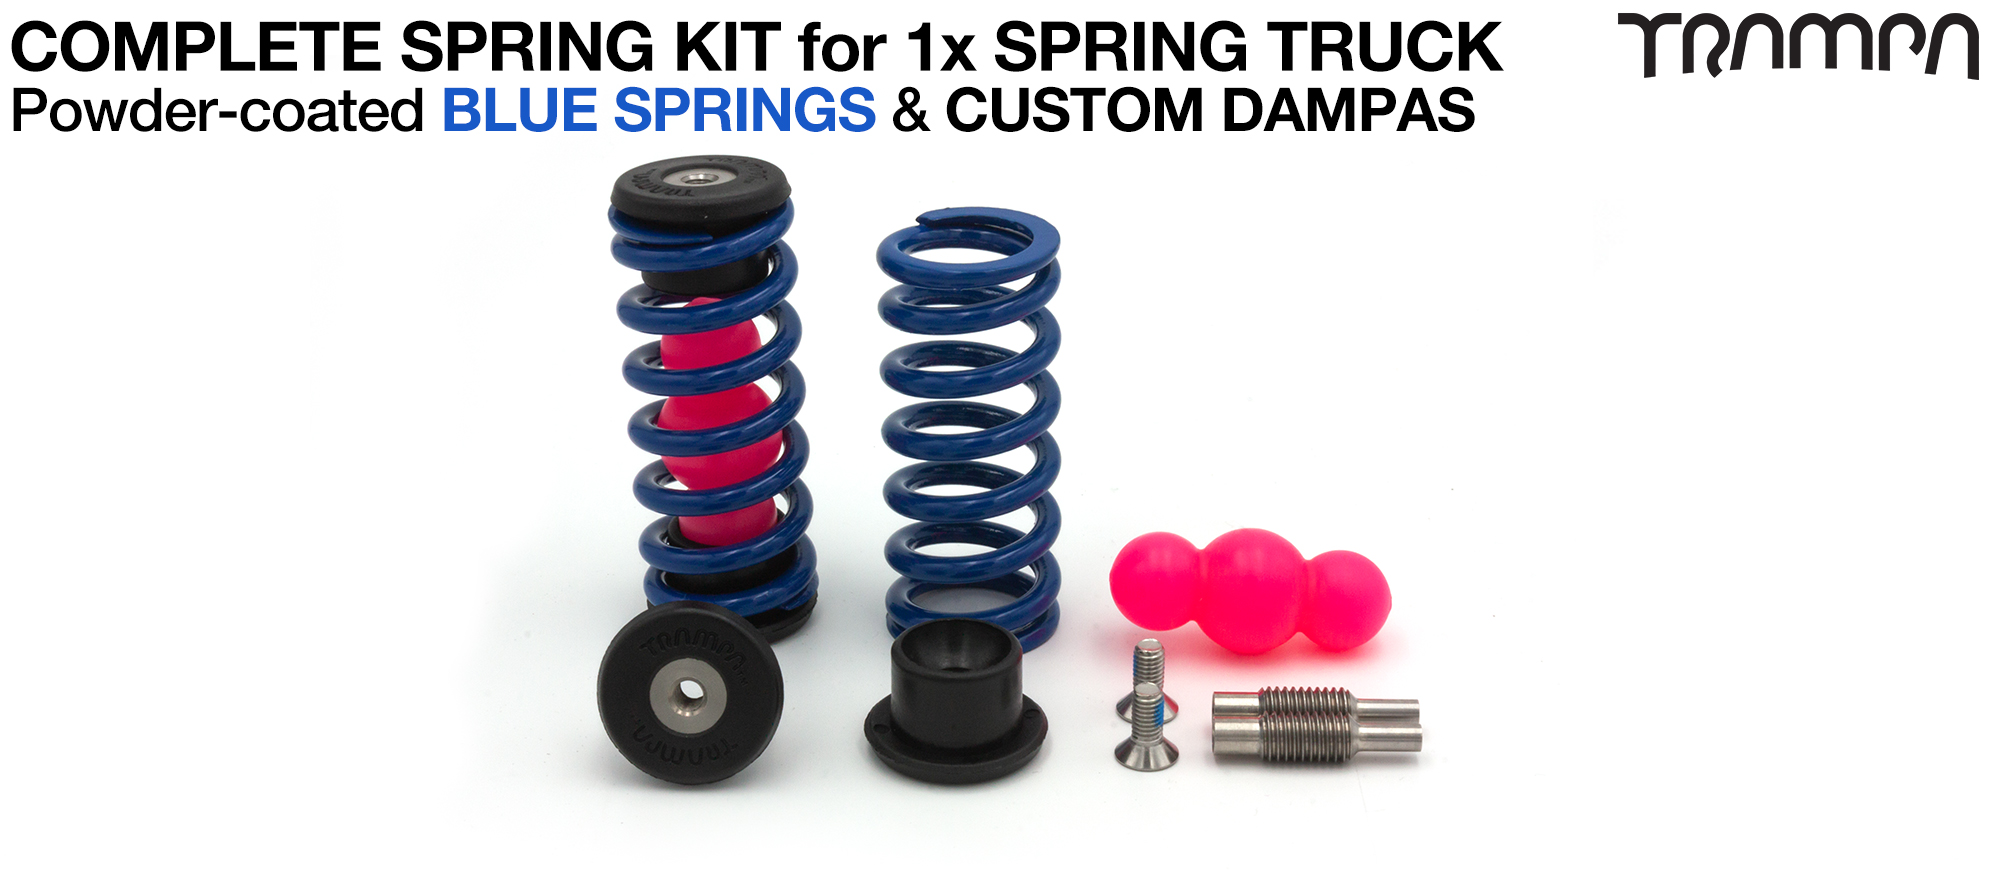 Spring kit Complete for 1x Truck - 2x Spring 2x Dampa 4x Spring Retainers 2x Spring Adjuster & 2 M5x12mm Countersunk Bolt  BLUE Springs